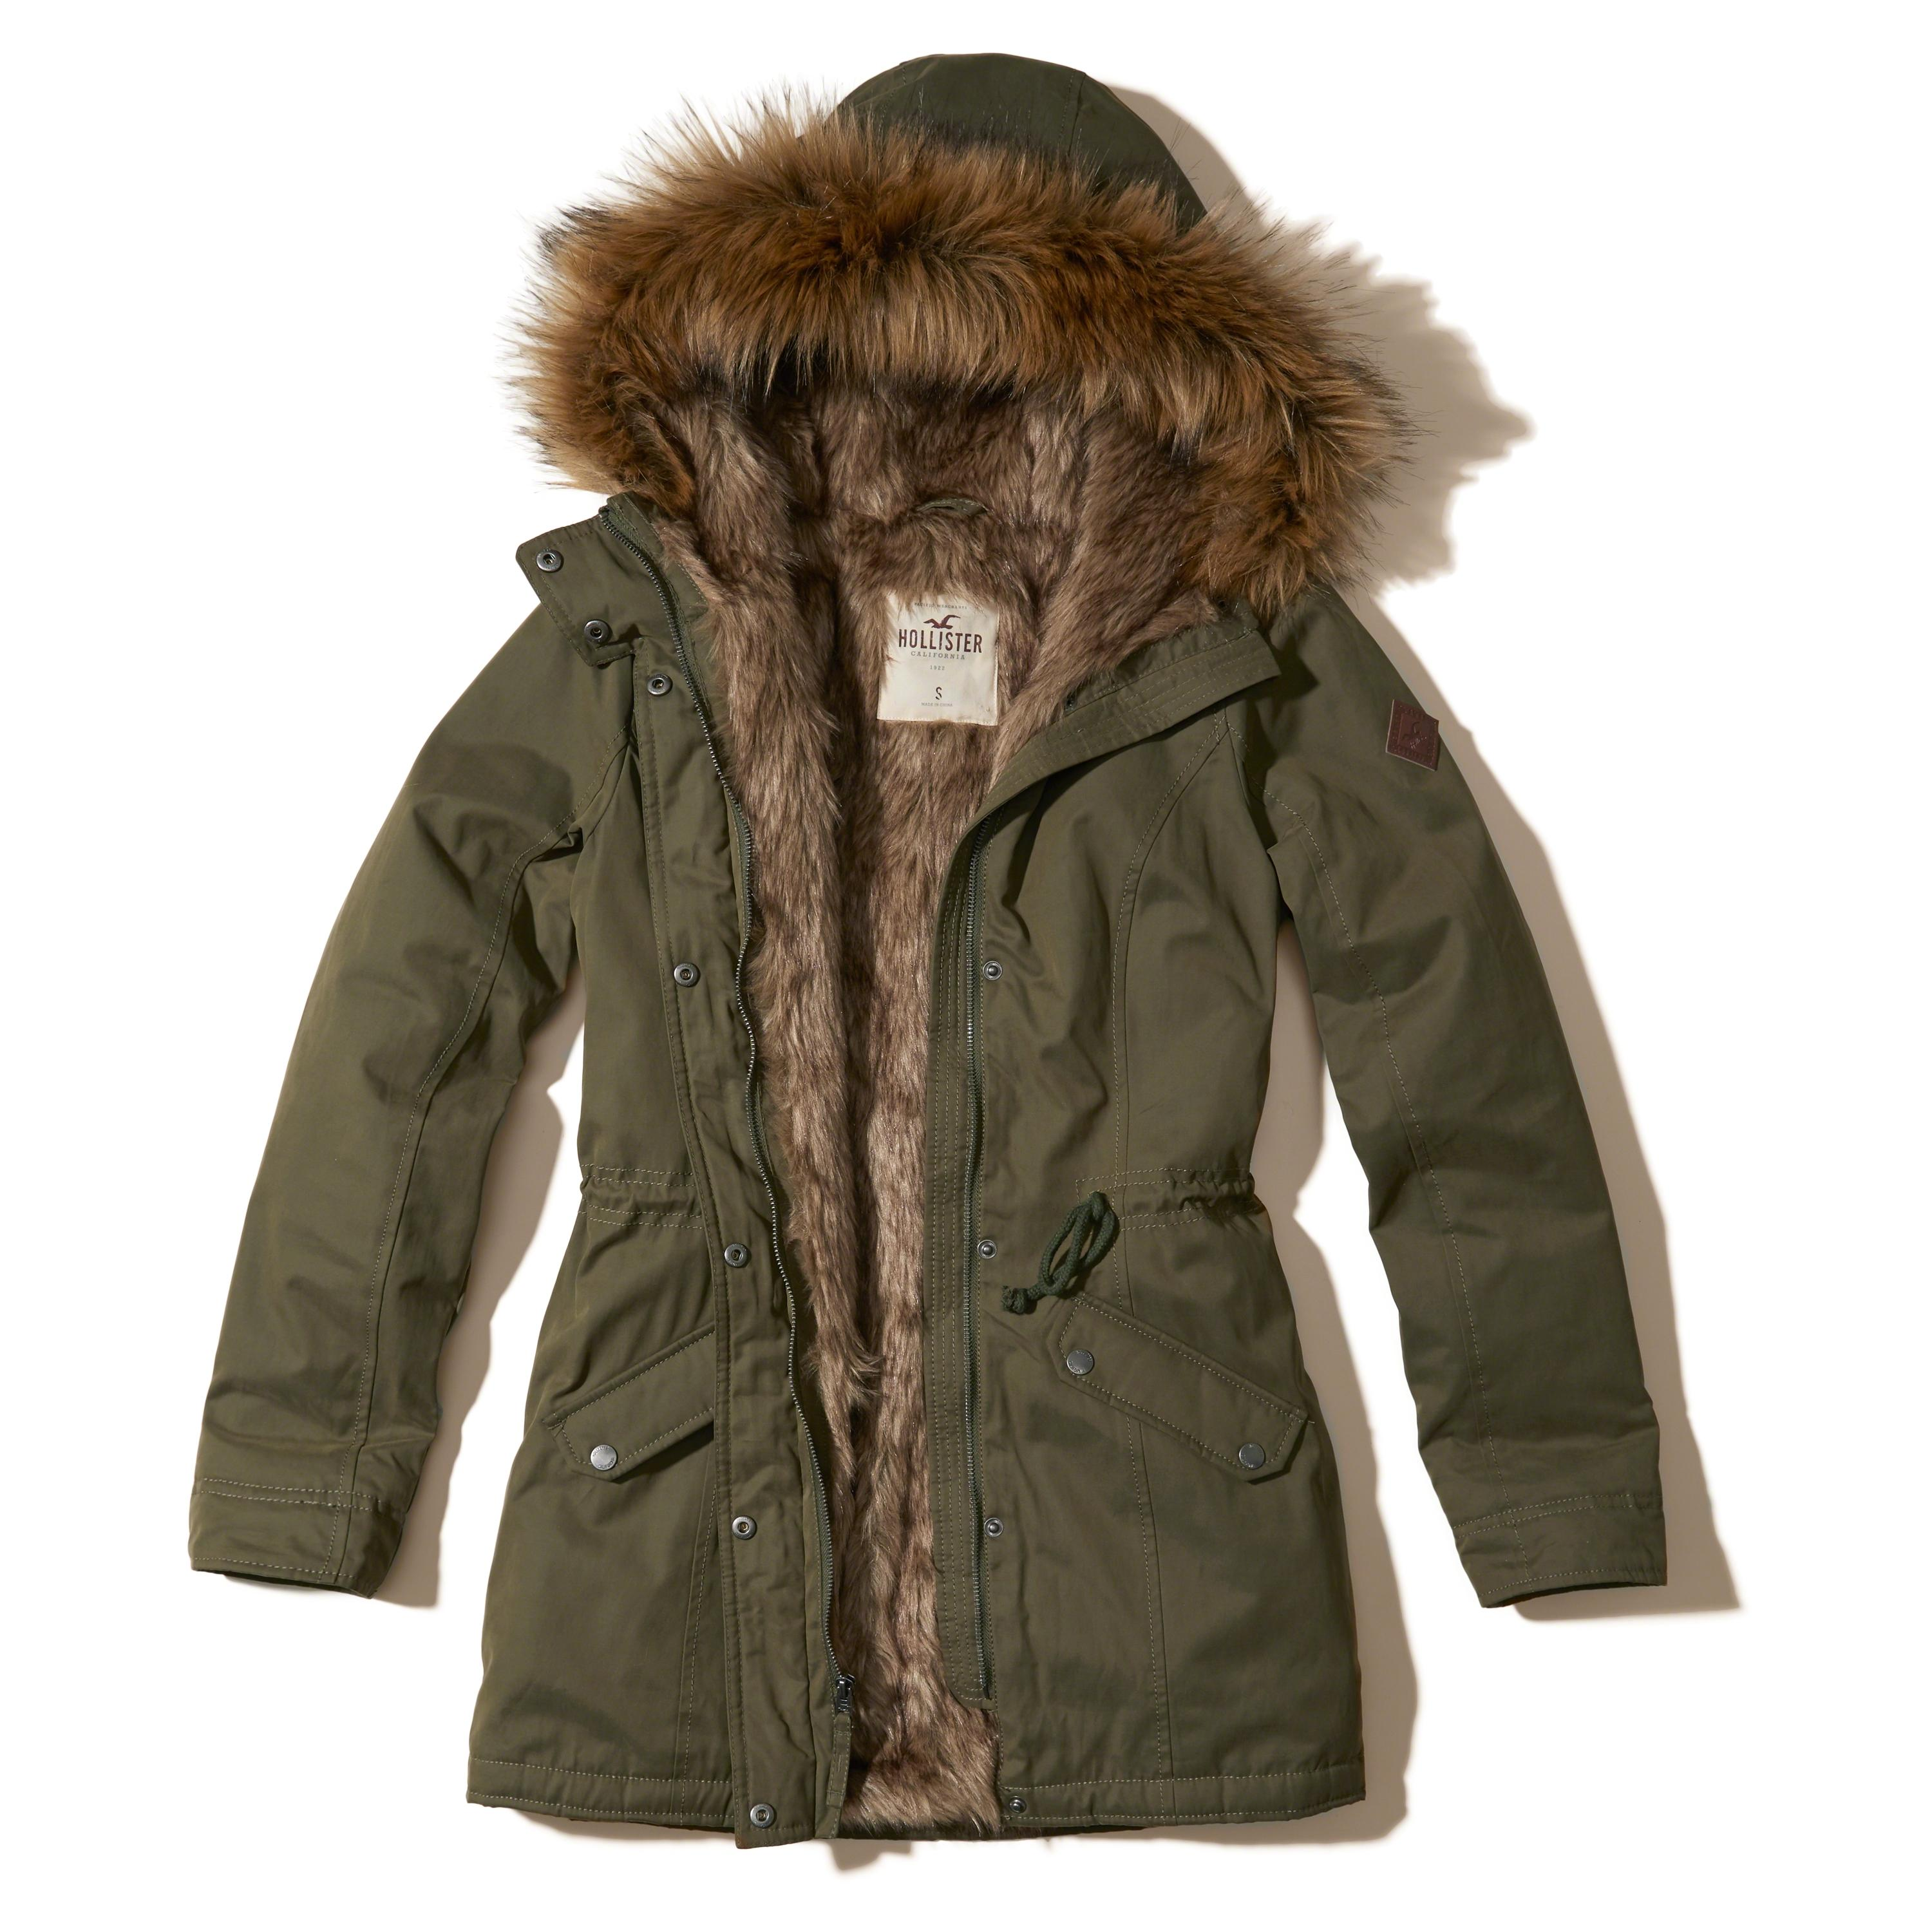 Vans Fuego MTE Parka. % nylon parka with % polyester lining. Removable faux fur trim at the hood. Size M, armpit to armpit 20